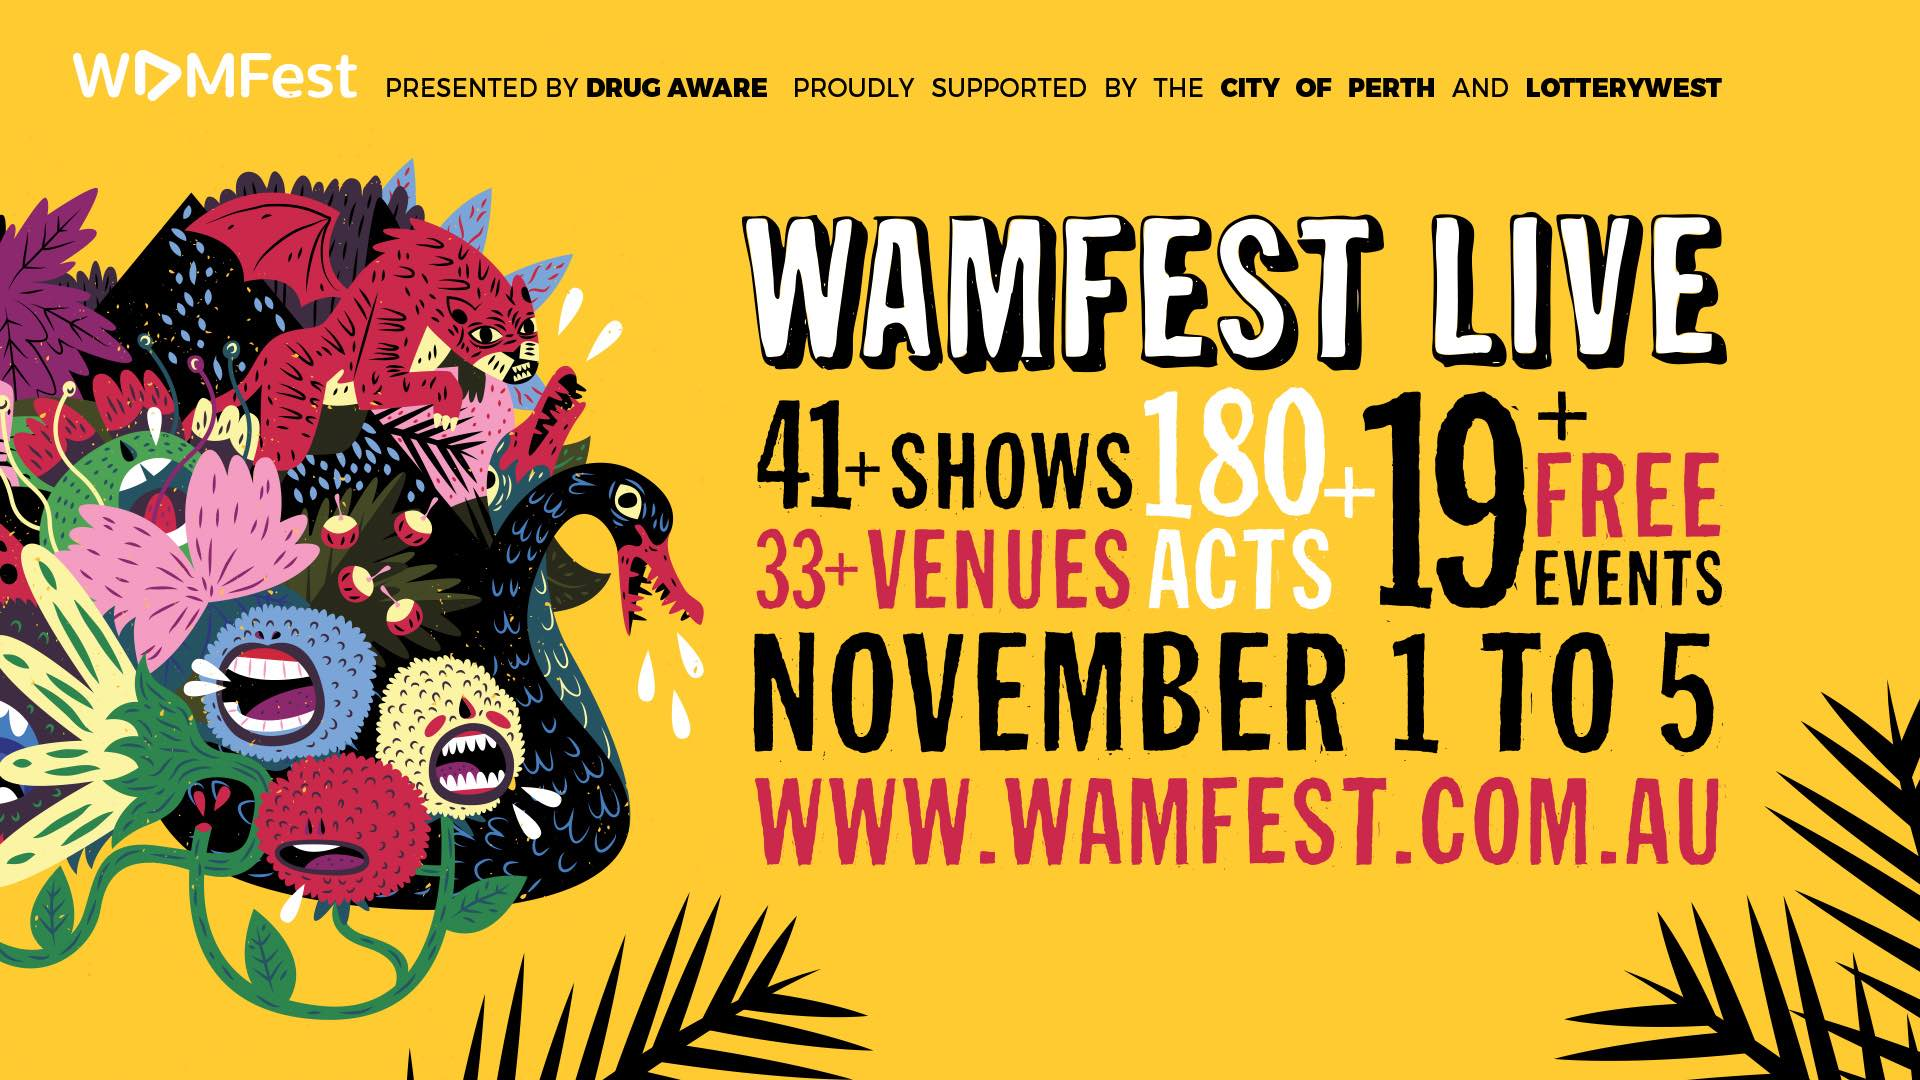 wamfest-live-facebook-event2 small